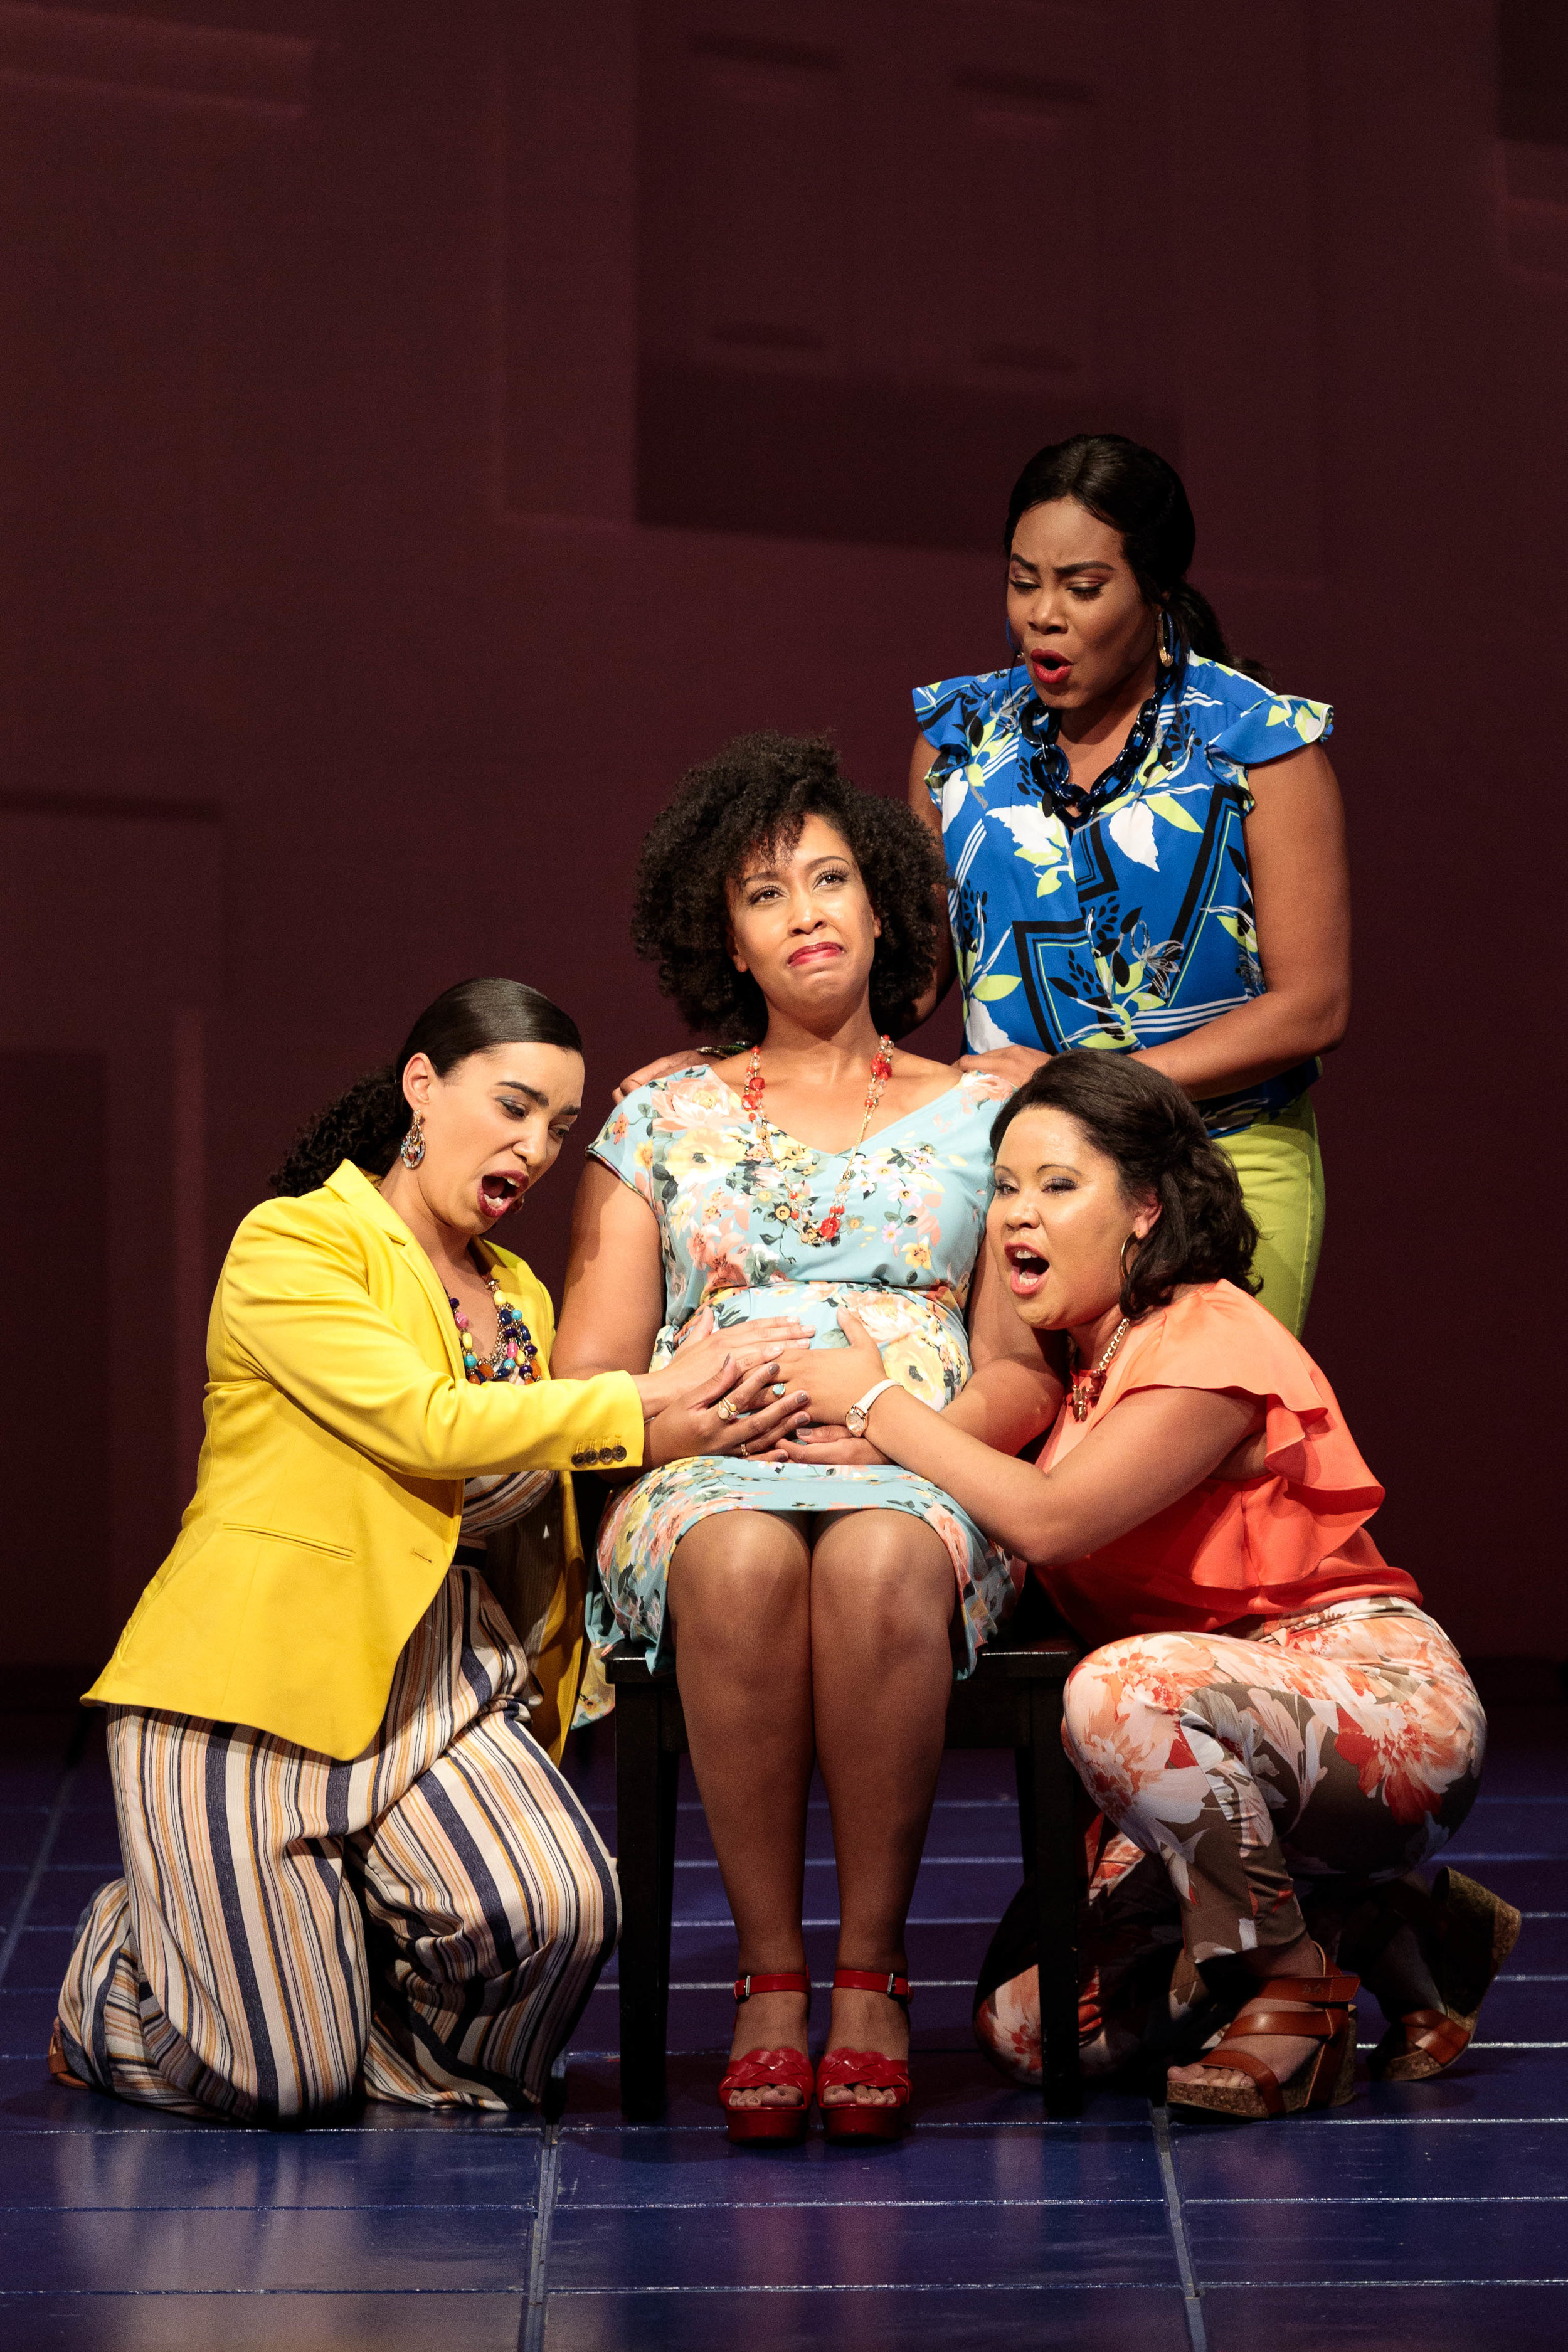 Ariana Wehr as Girlfriend 1 in Blue at The Glimmerglass Festival with Briana Hunter (Mother), Brea Renetta Marshall (Girlfriend 2), and Mia Athey (Girlfriend 3).    Photo Credit: Karli Cadel, 2019.